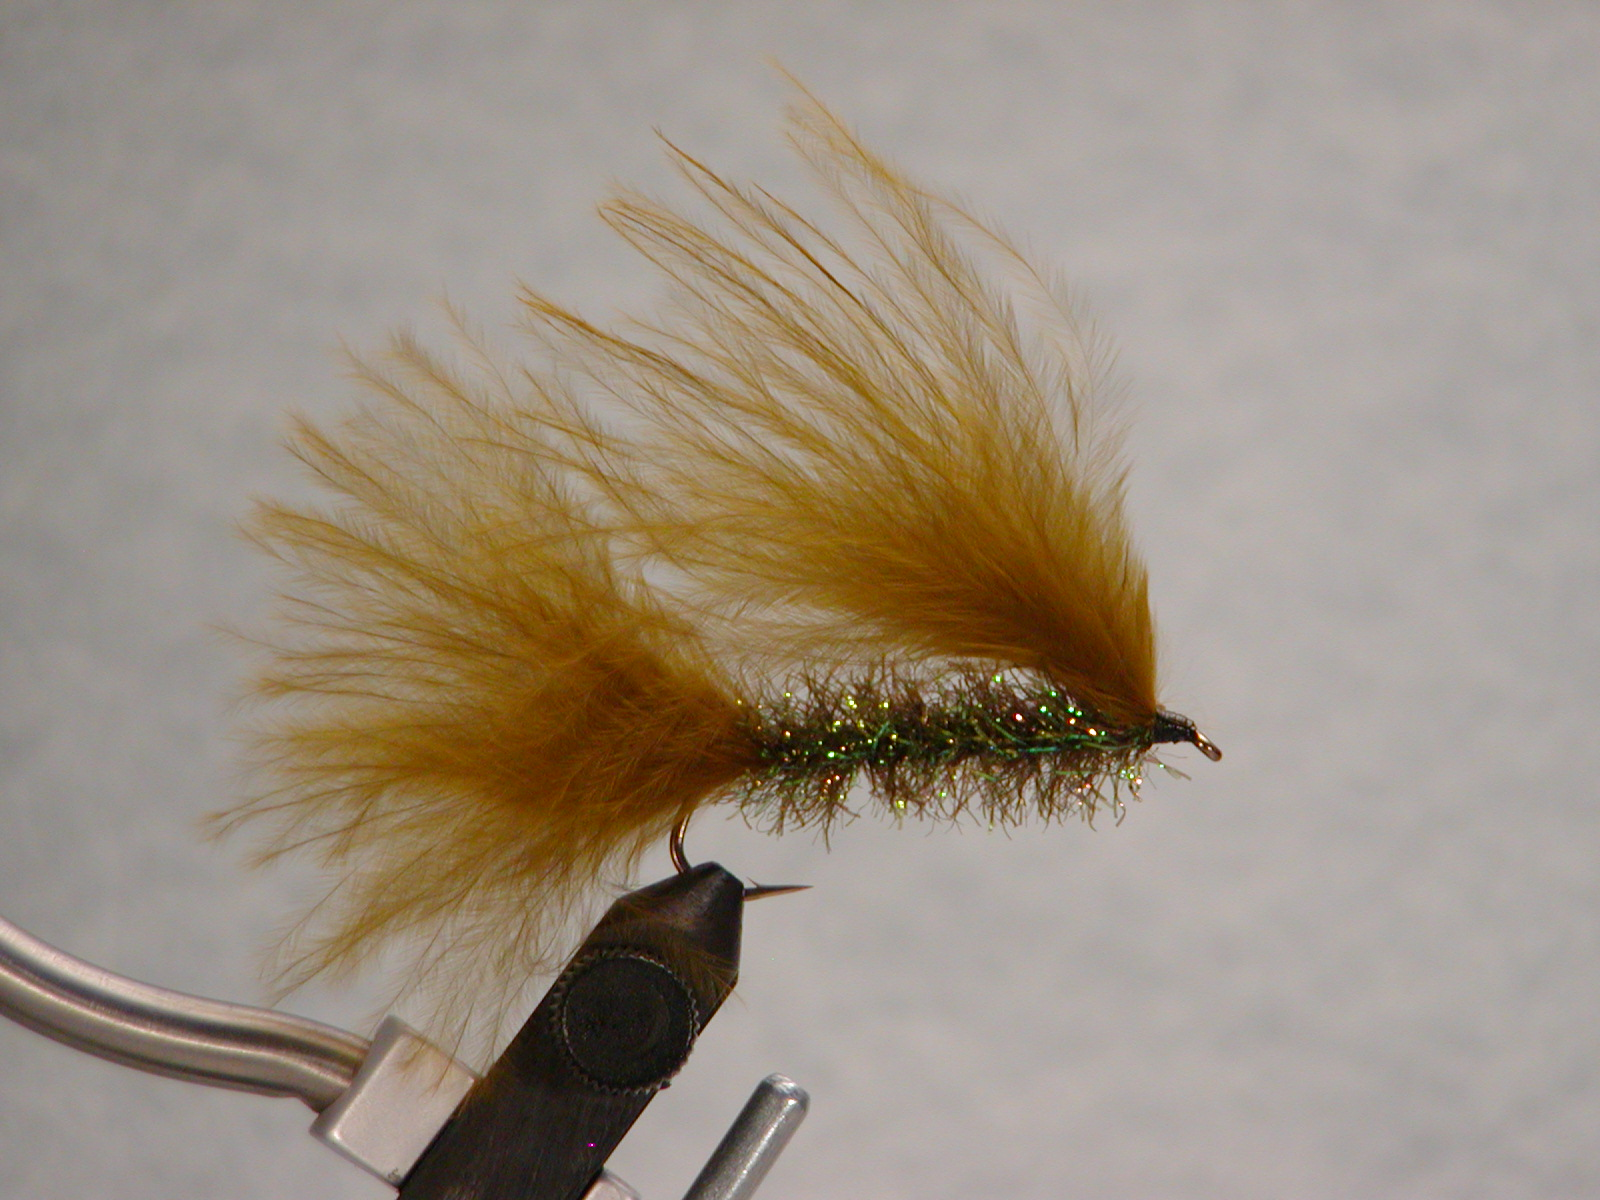 Olive Leech #4, Jay Fair Trolling Fly. $5.49, sold in pairs.